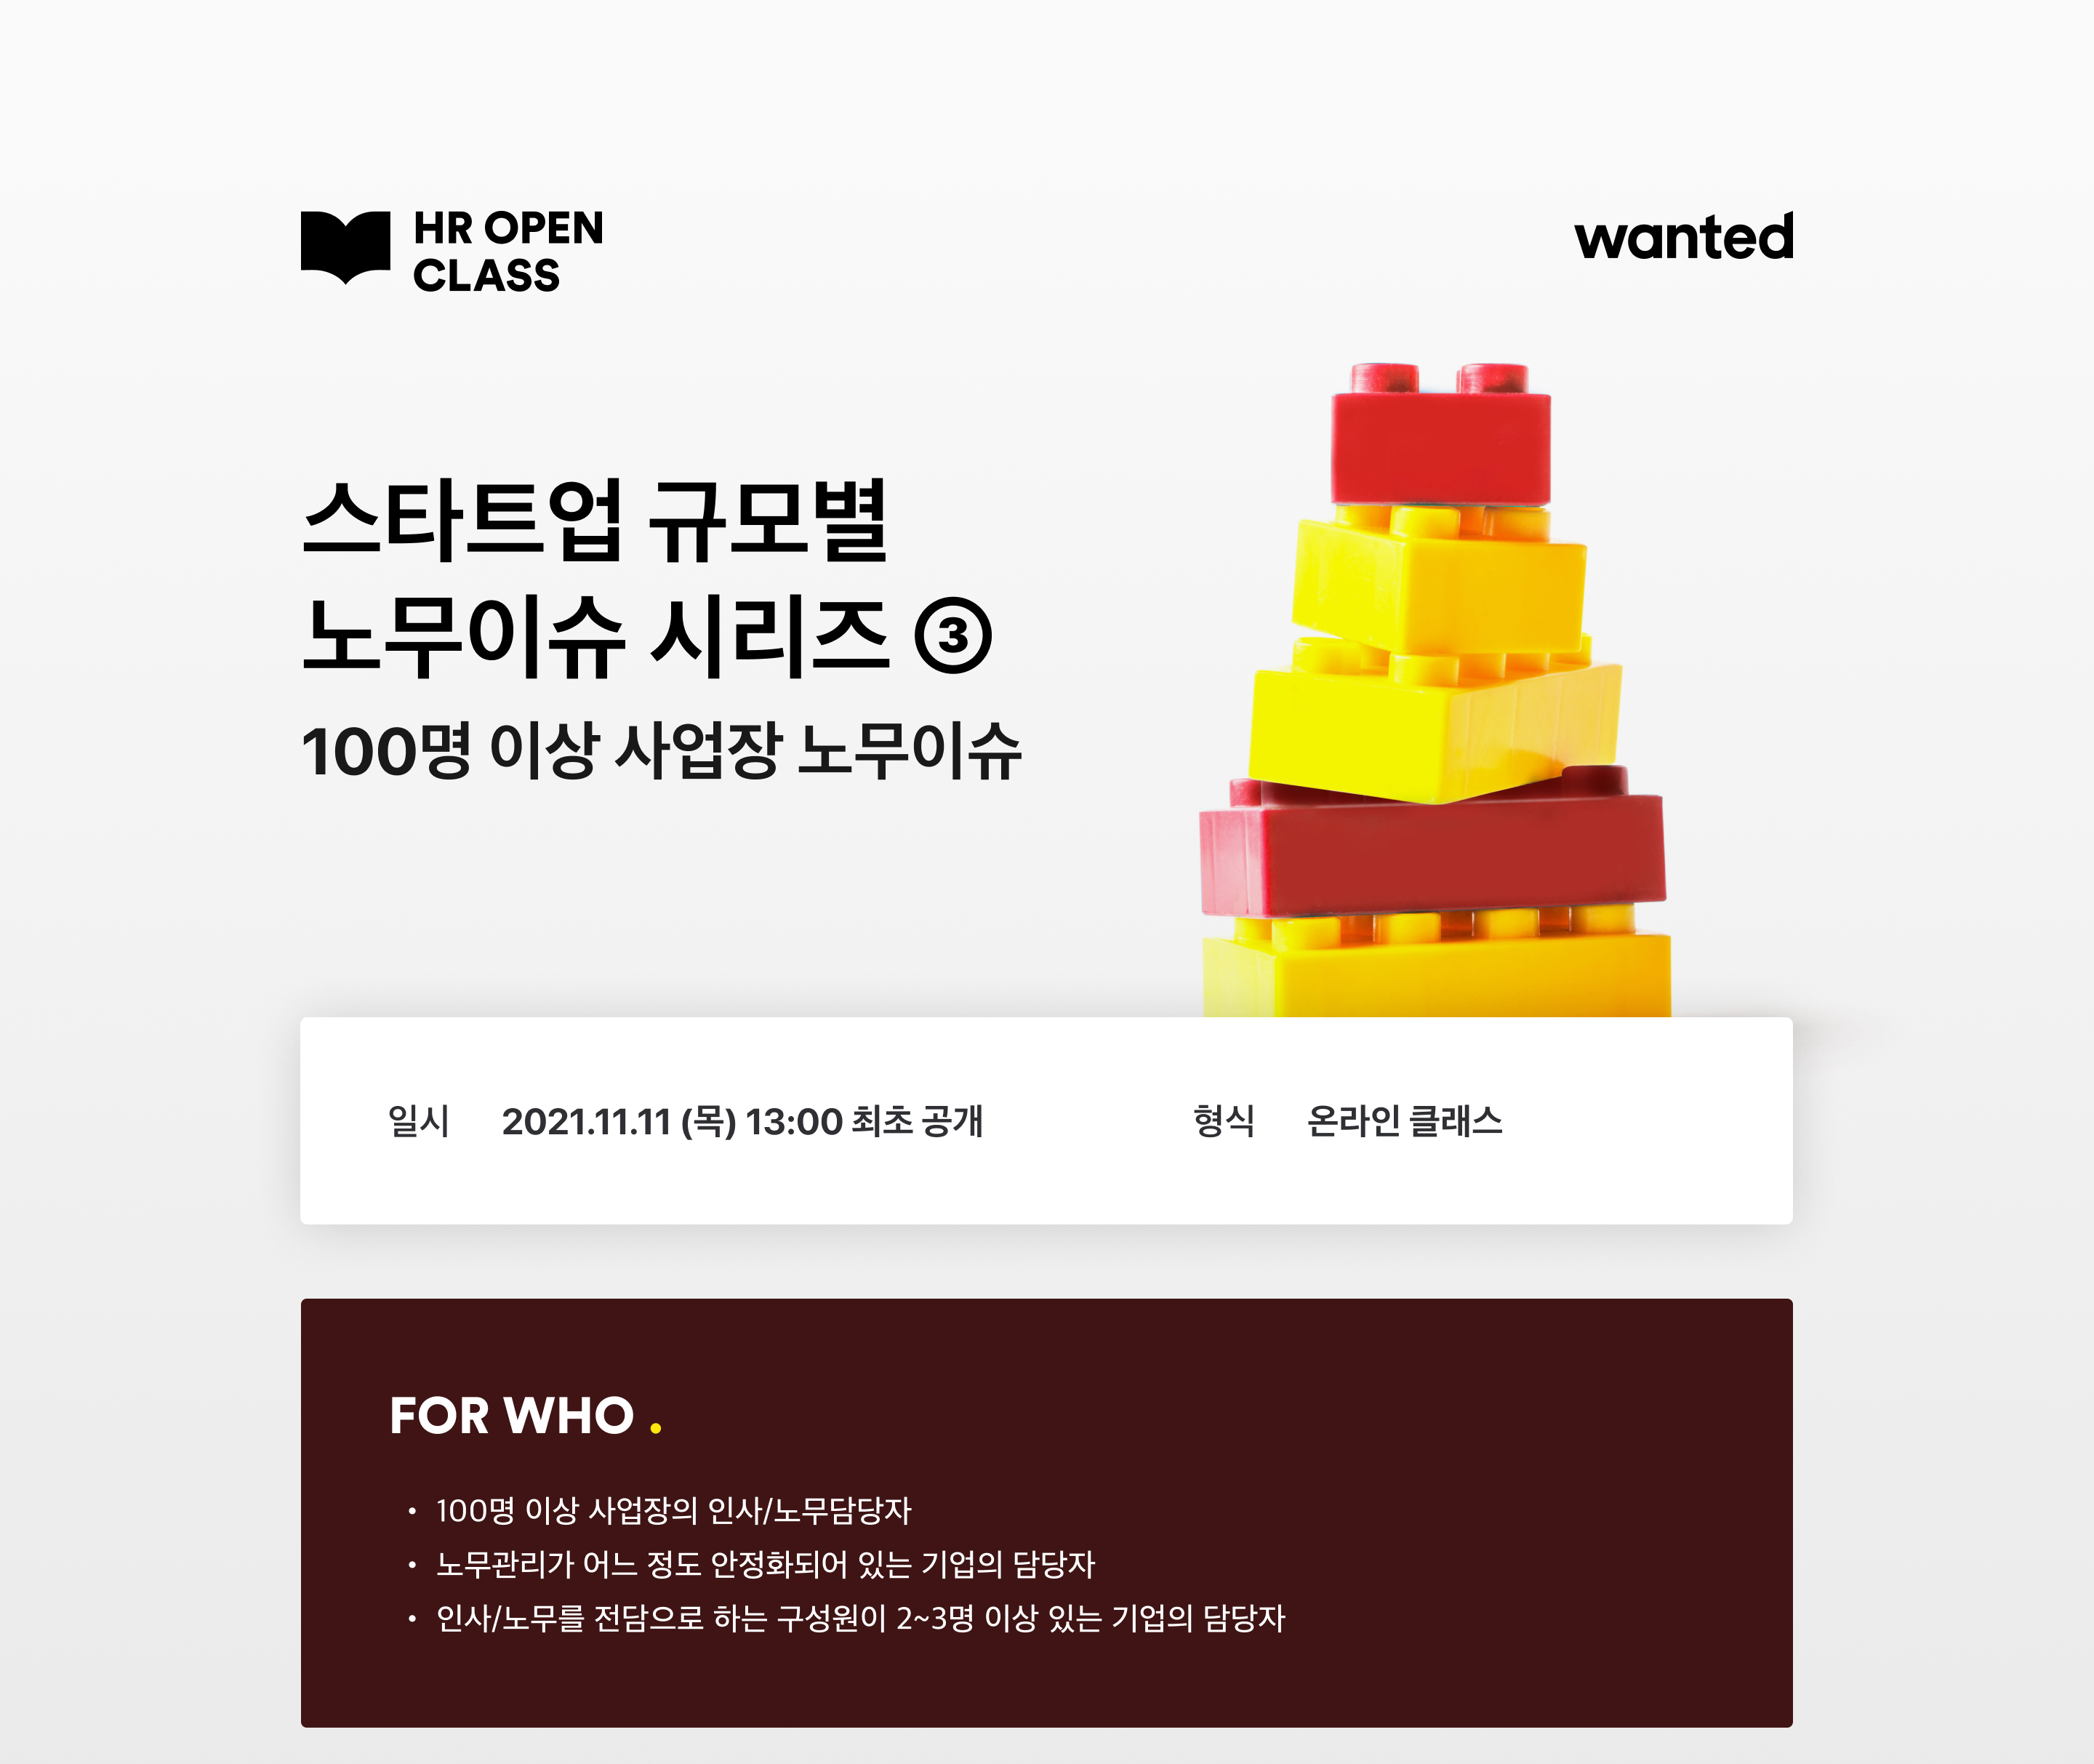 https://static.wanted.co.kr/images/events/1524/eb1c75fb.jpg